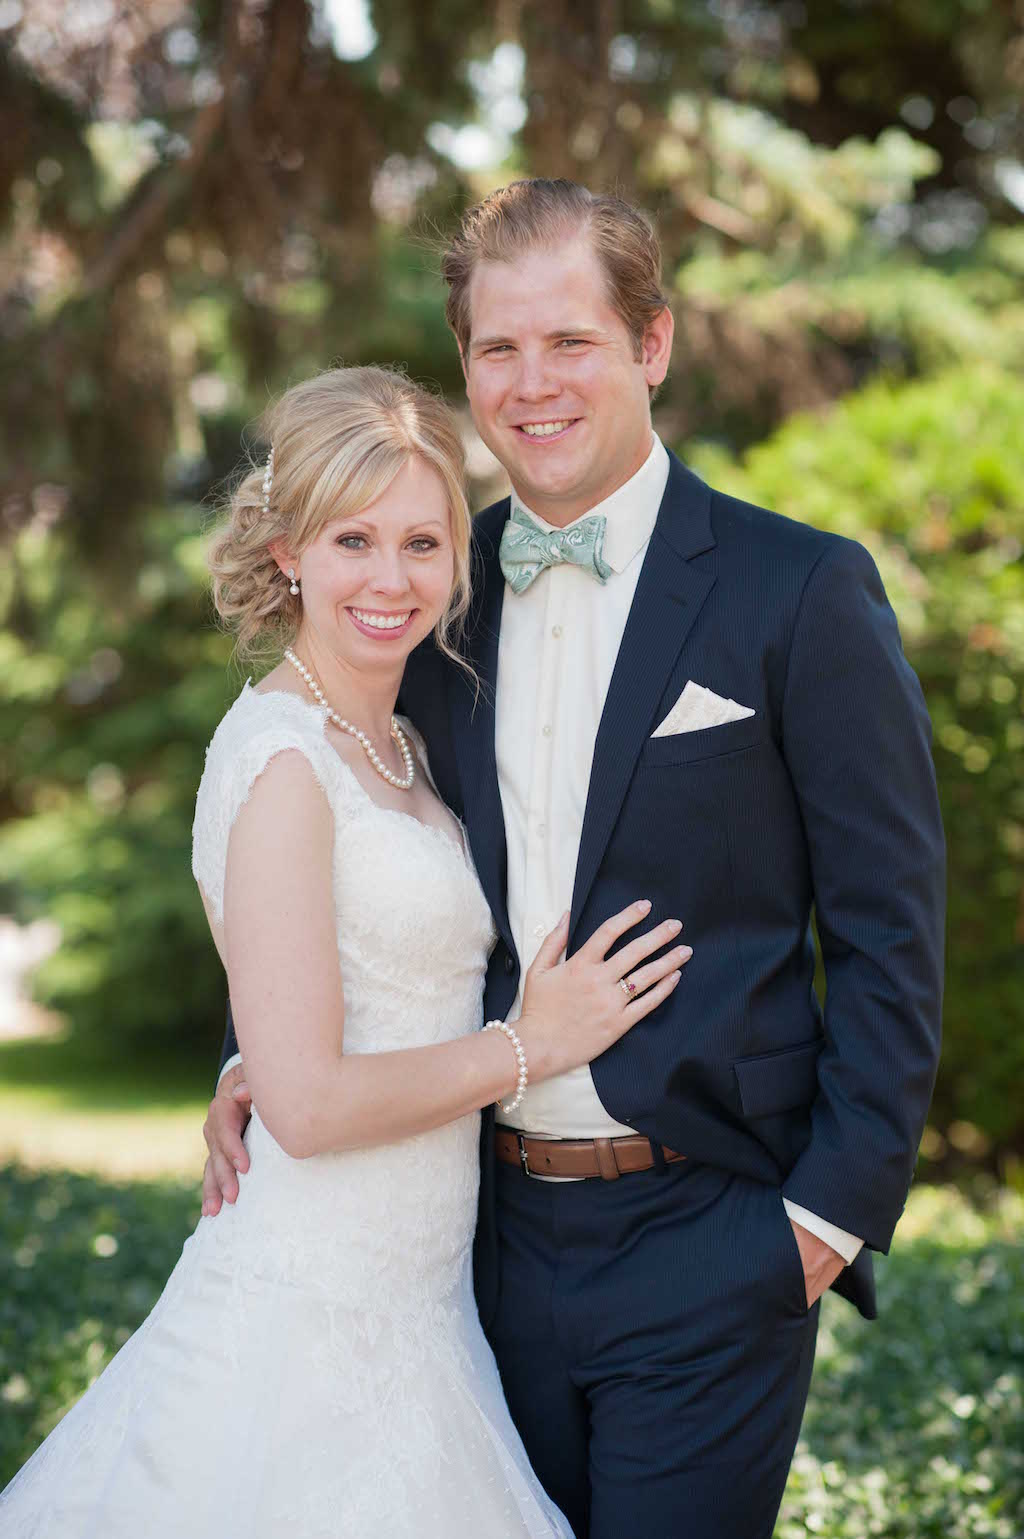 photographers in mn for weddings